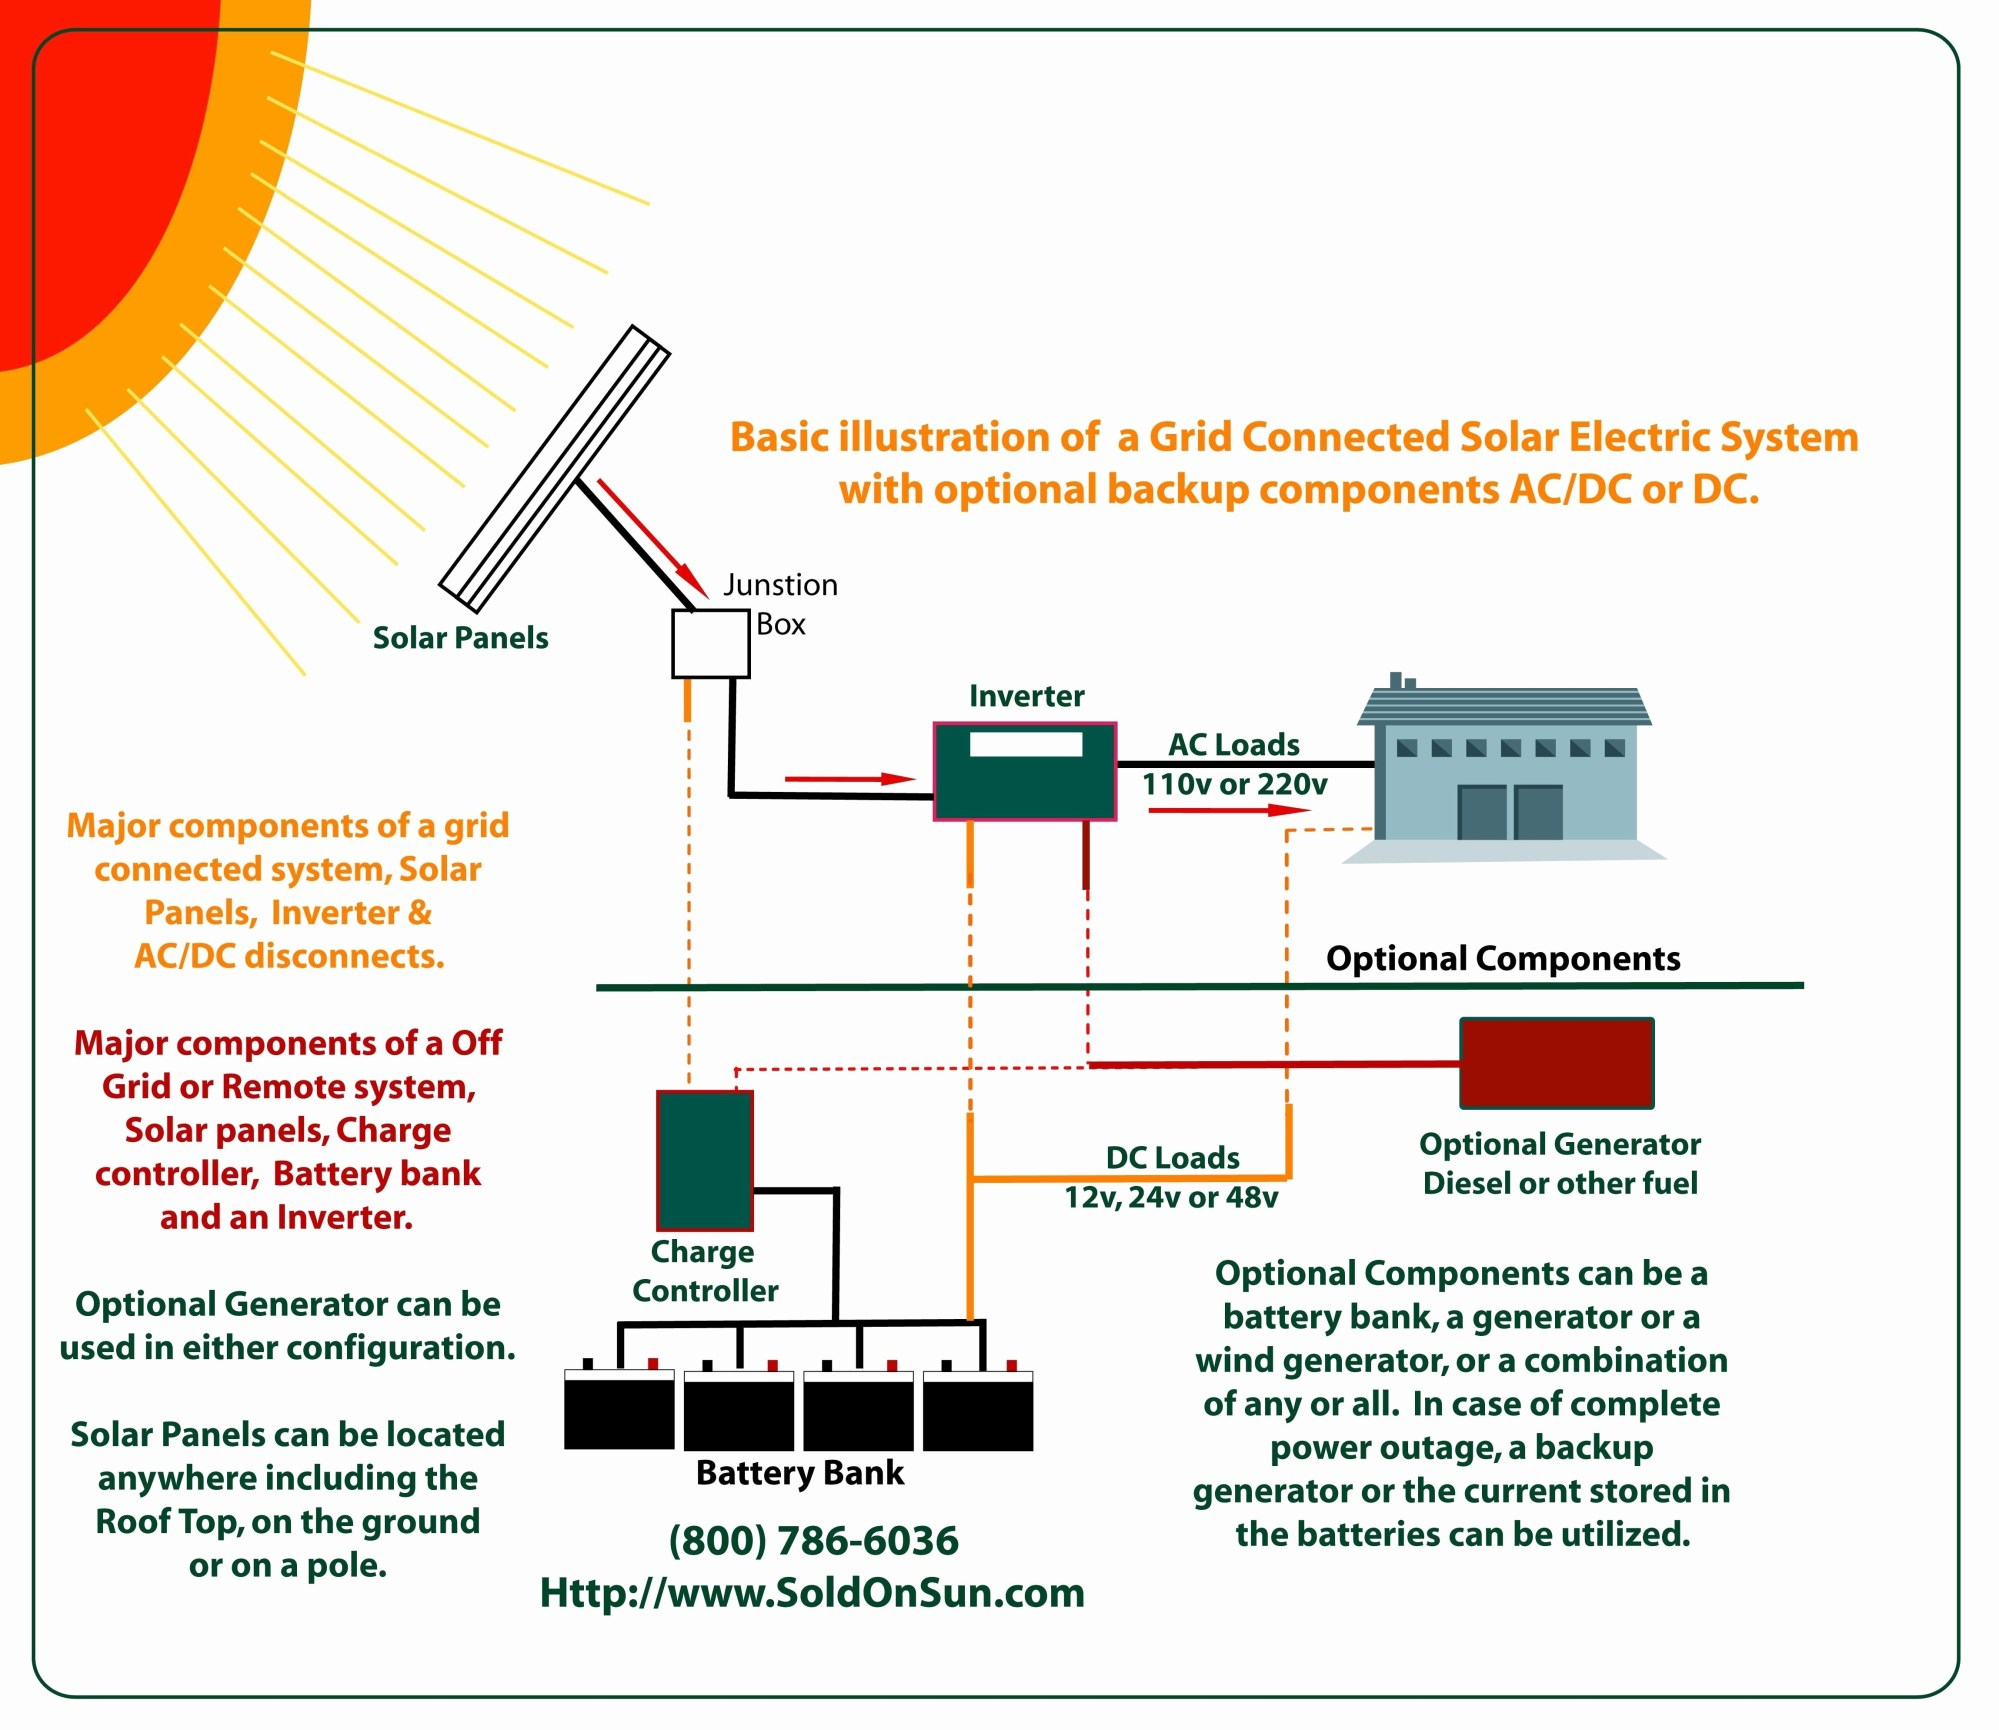 hight resolution of solar panel wiring diagram wiring diagram solar panels inverter fresh power at light wiring diagram